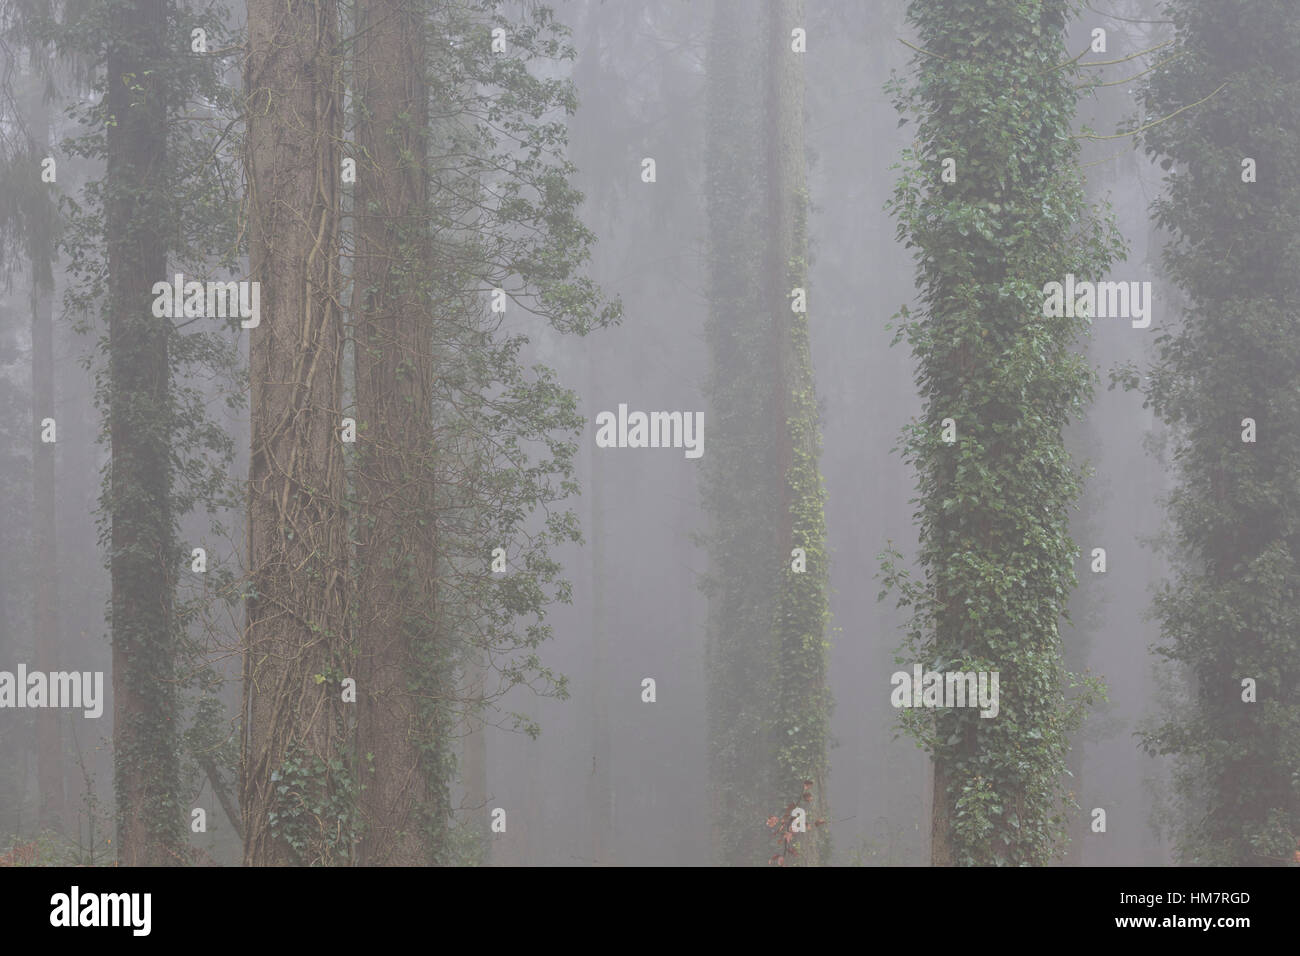 Misty conifer forest, Wye Valley, Wales - Stock Image